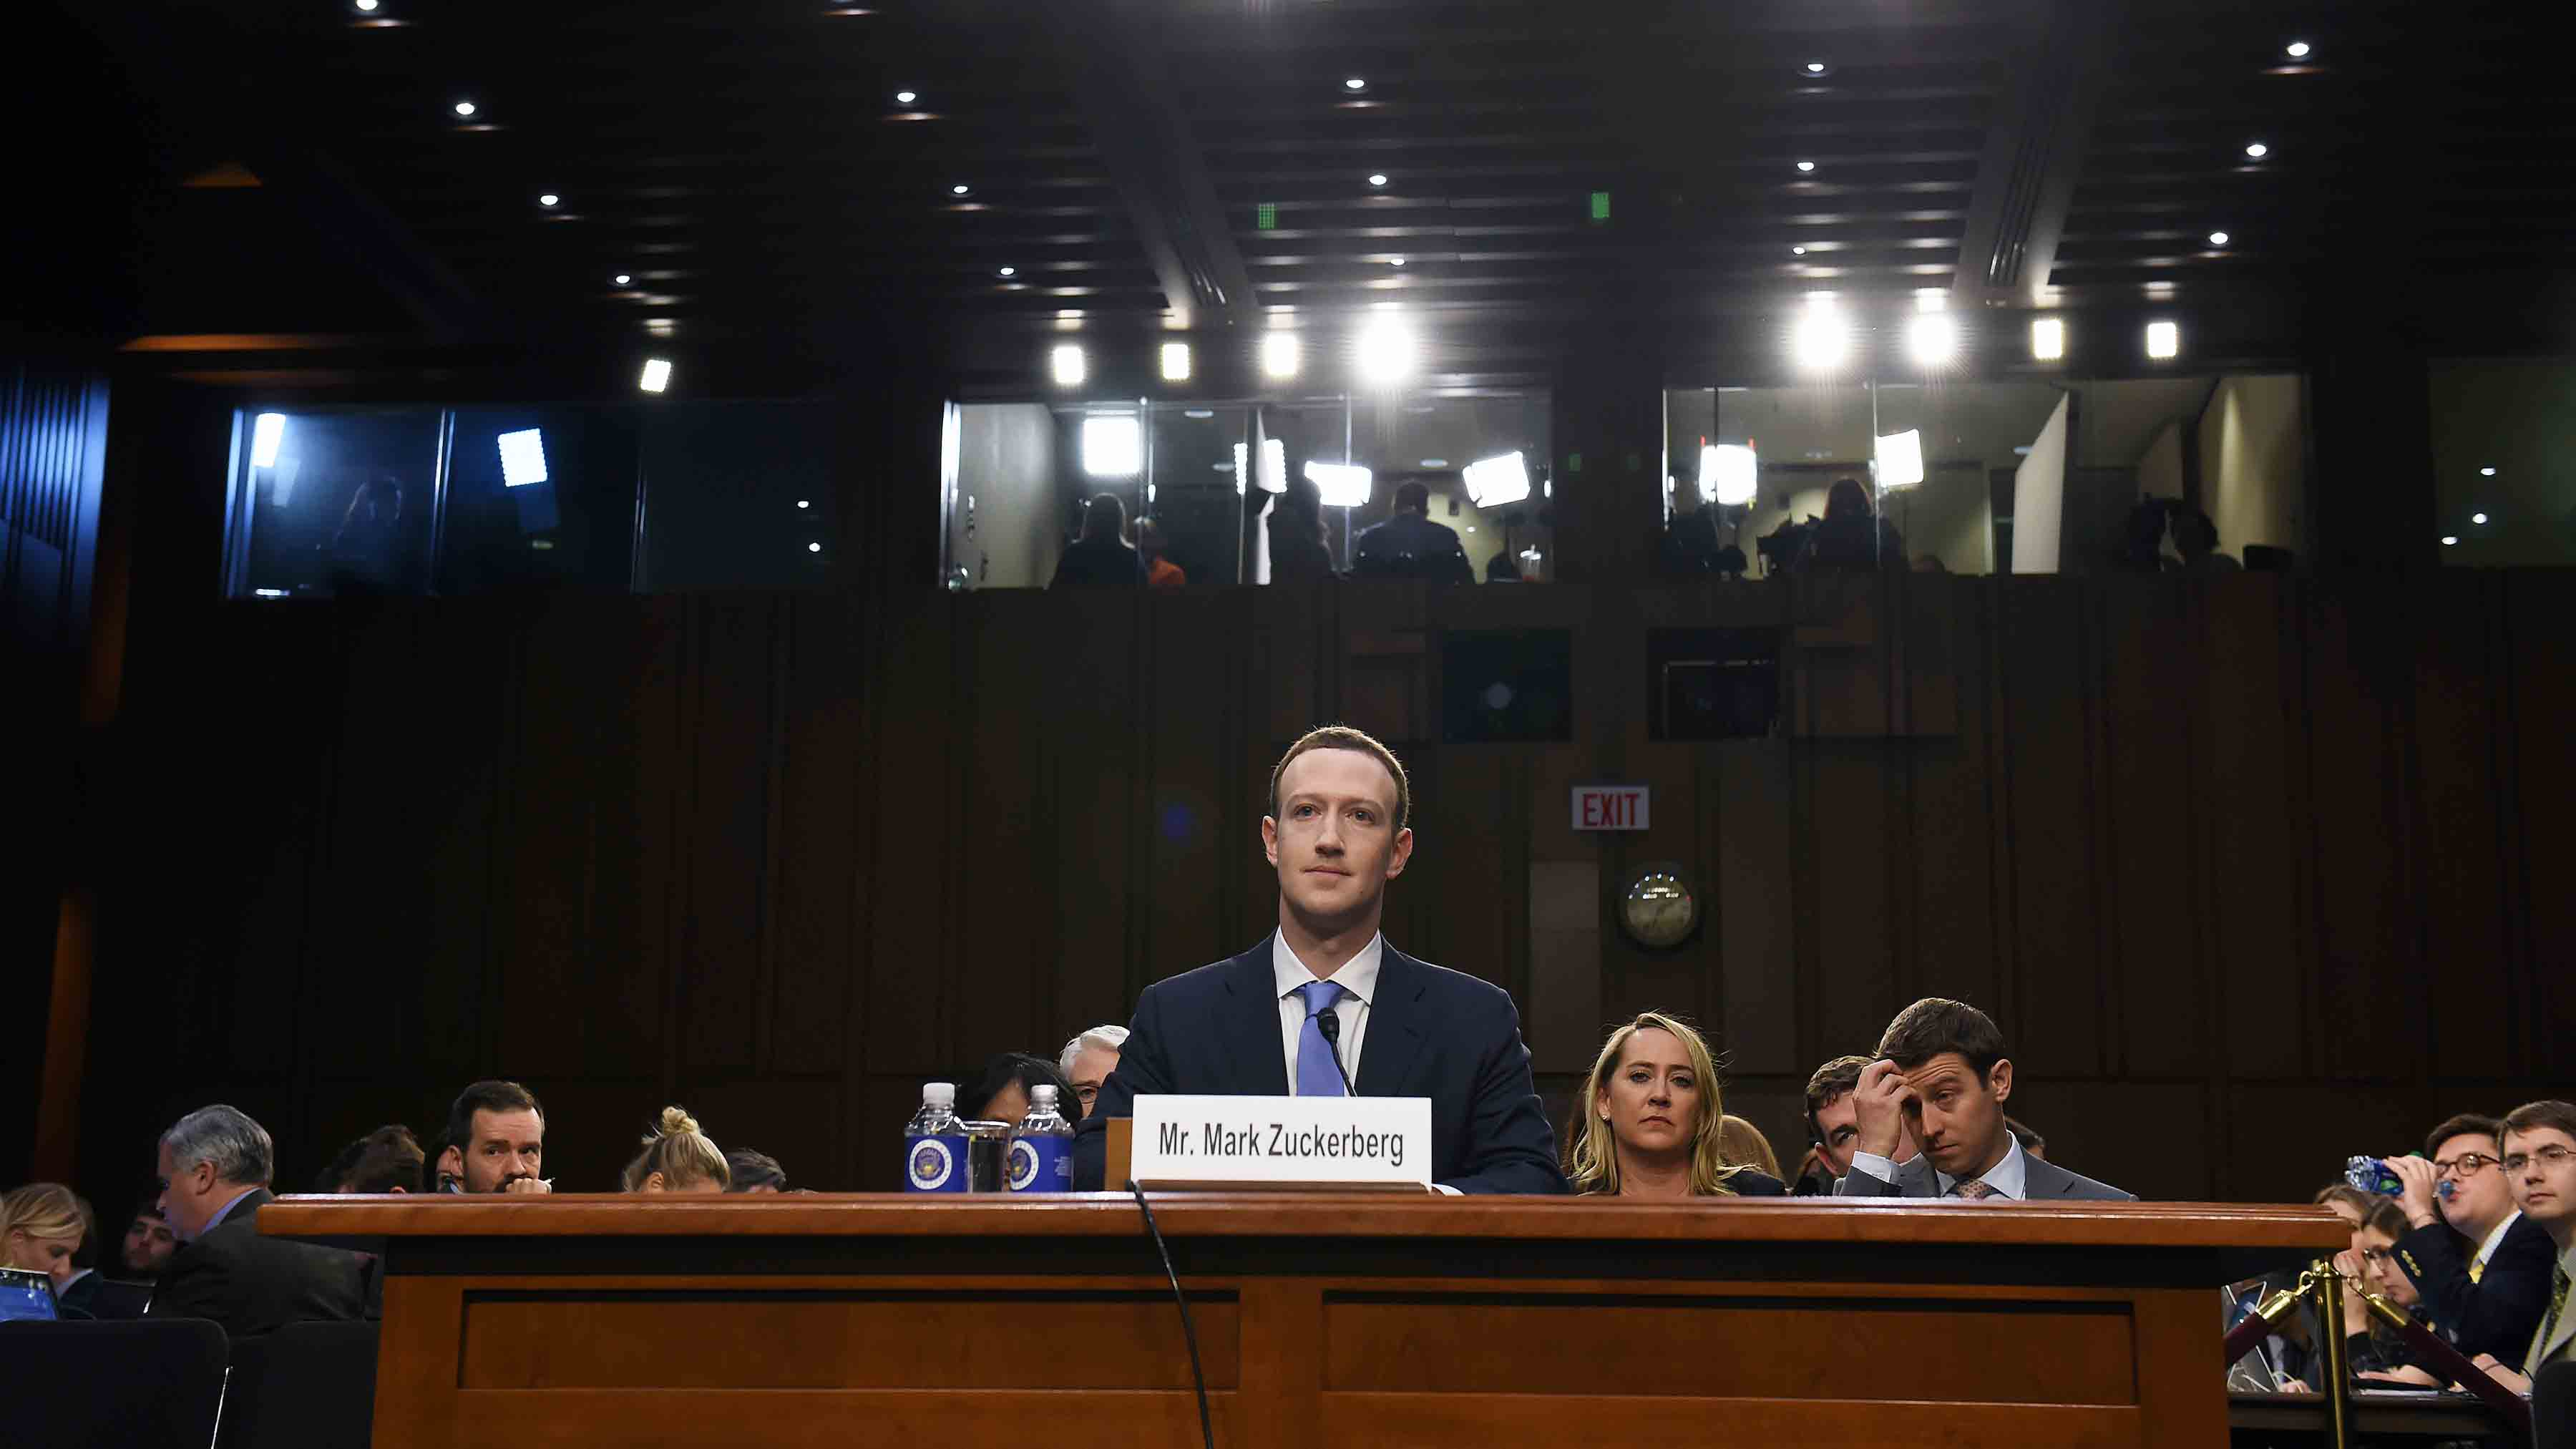 Facebook CEO, Mark Zuckerberg appears for a hearing at the Hart Senate Office Building on Tuesday April 10, 2018 in Washington, DC. Zuckerberg, who is the CEO of Facebook is appearing on Capitol Hill Tuesday. (Photo by Matt McClain/The Washington Post via Getty Images)